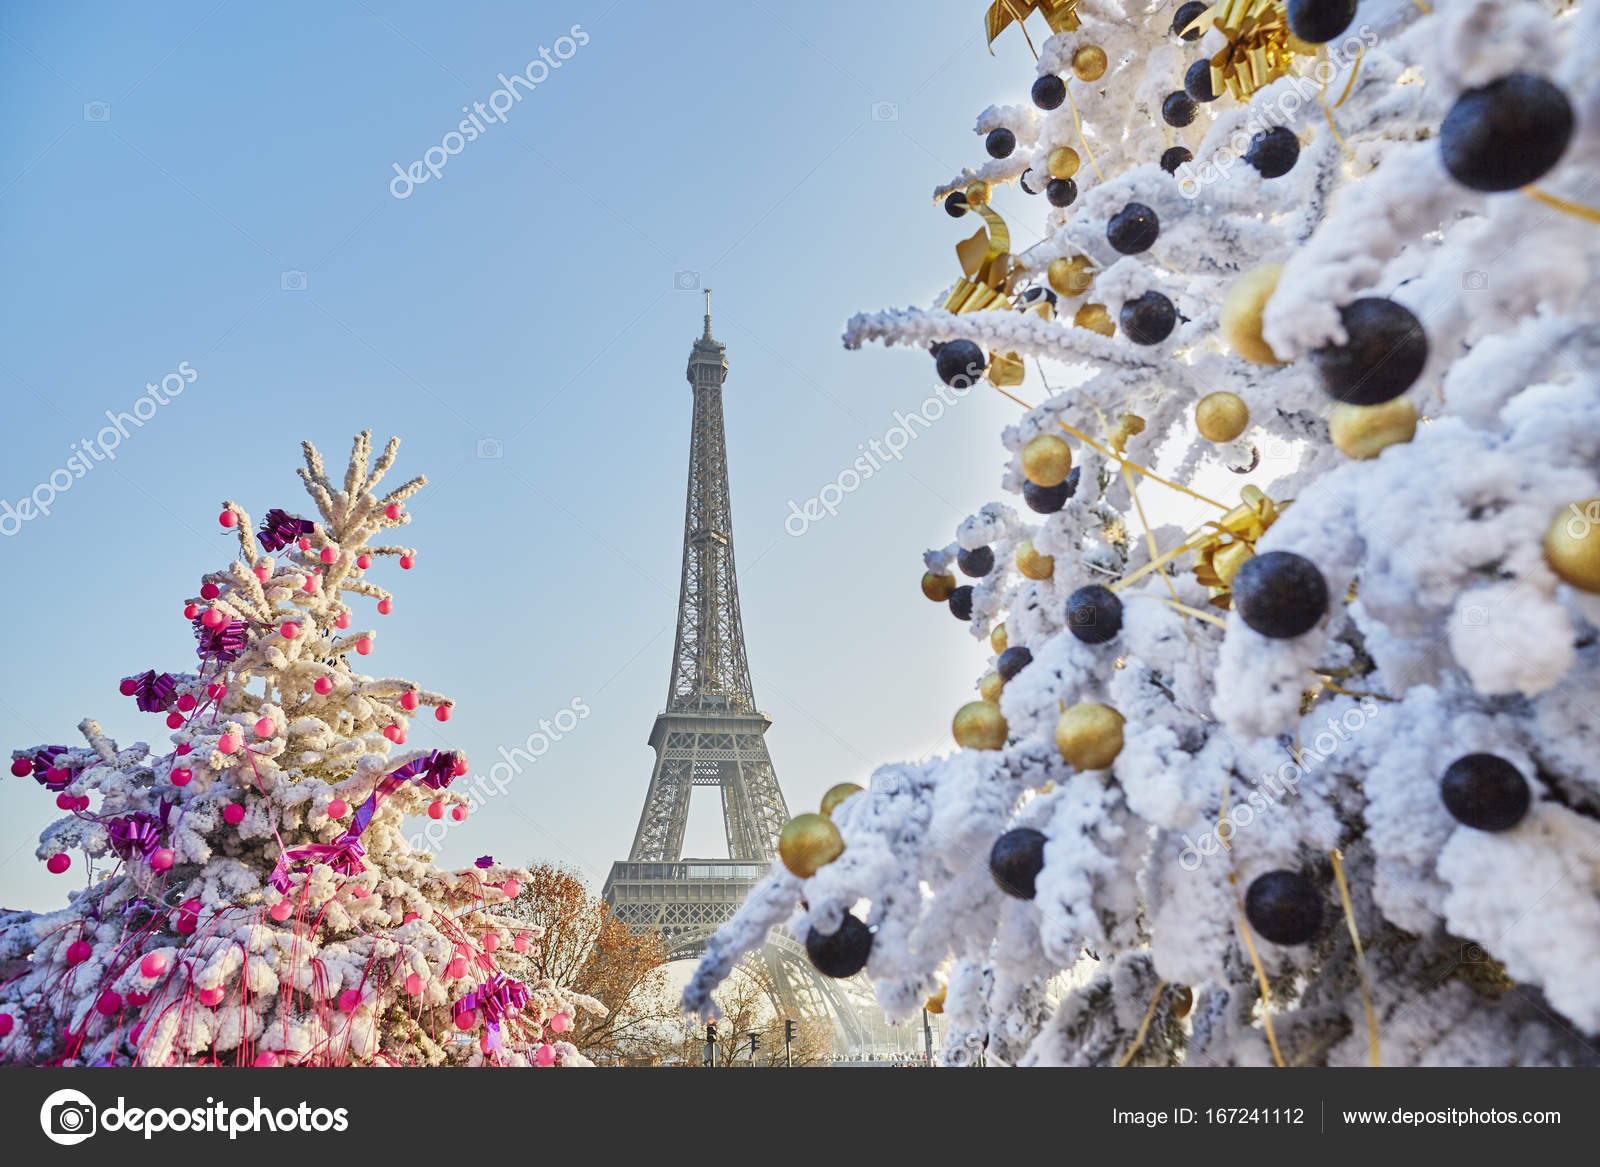 decorated christmas trees covered with snow near the eiffel tower in paris france photo by encrier